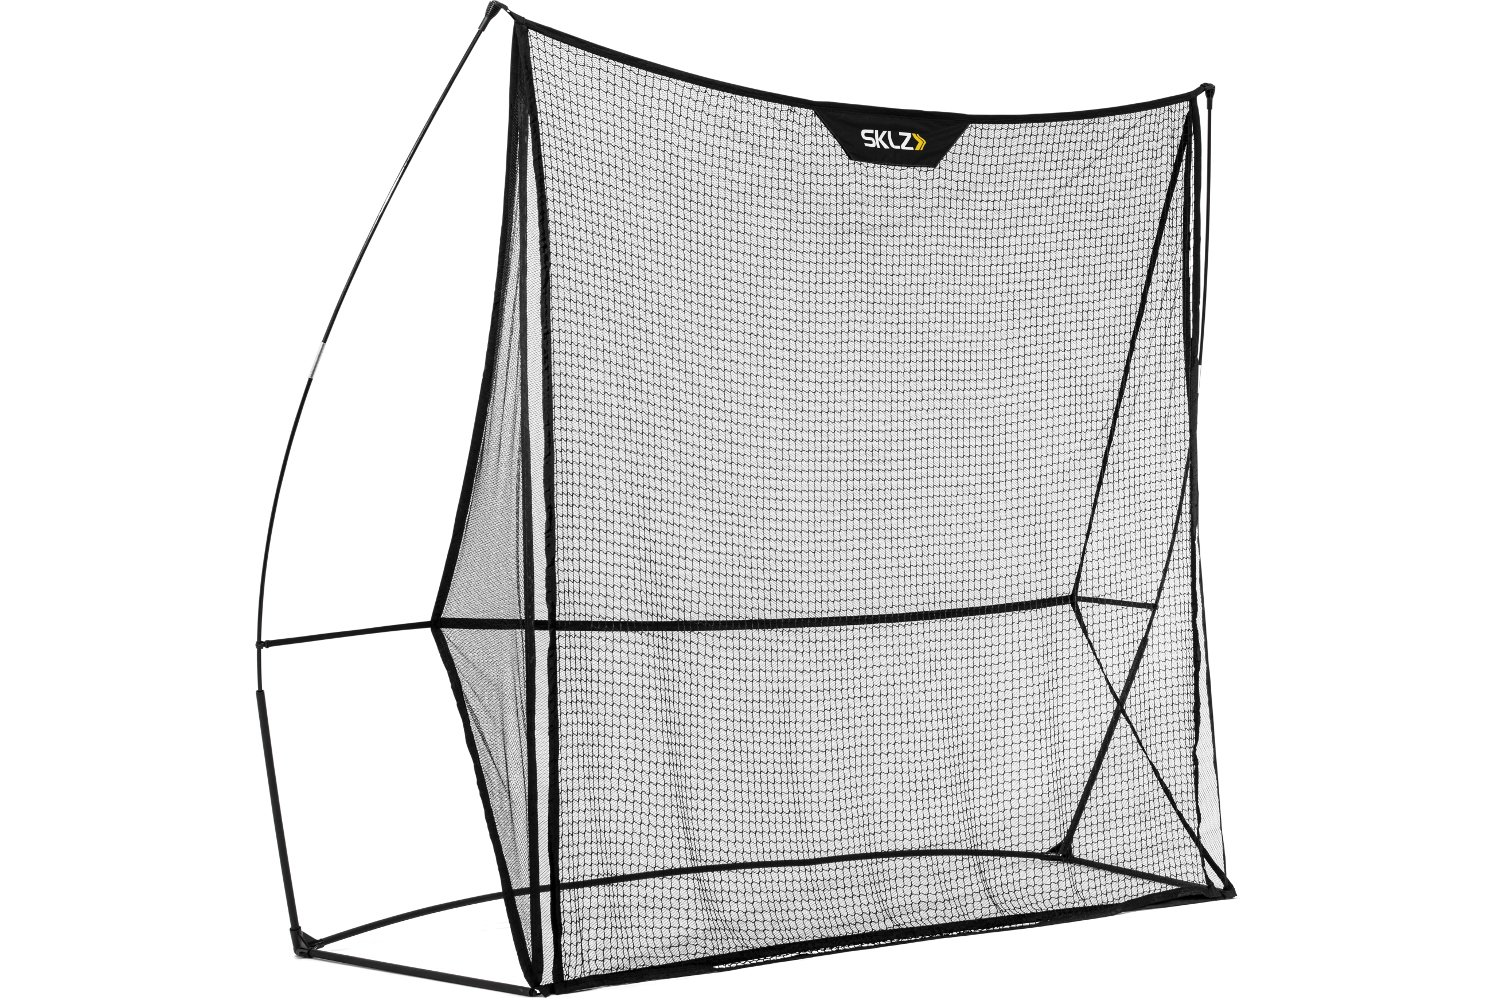 SKLZ Dual Net - 8.5' x 8.5' Premium and Durable Golf Training Net. by SKLZ (Image #2)